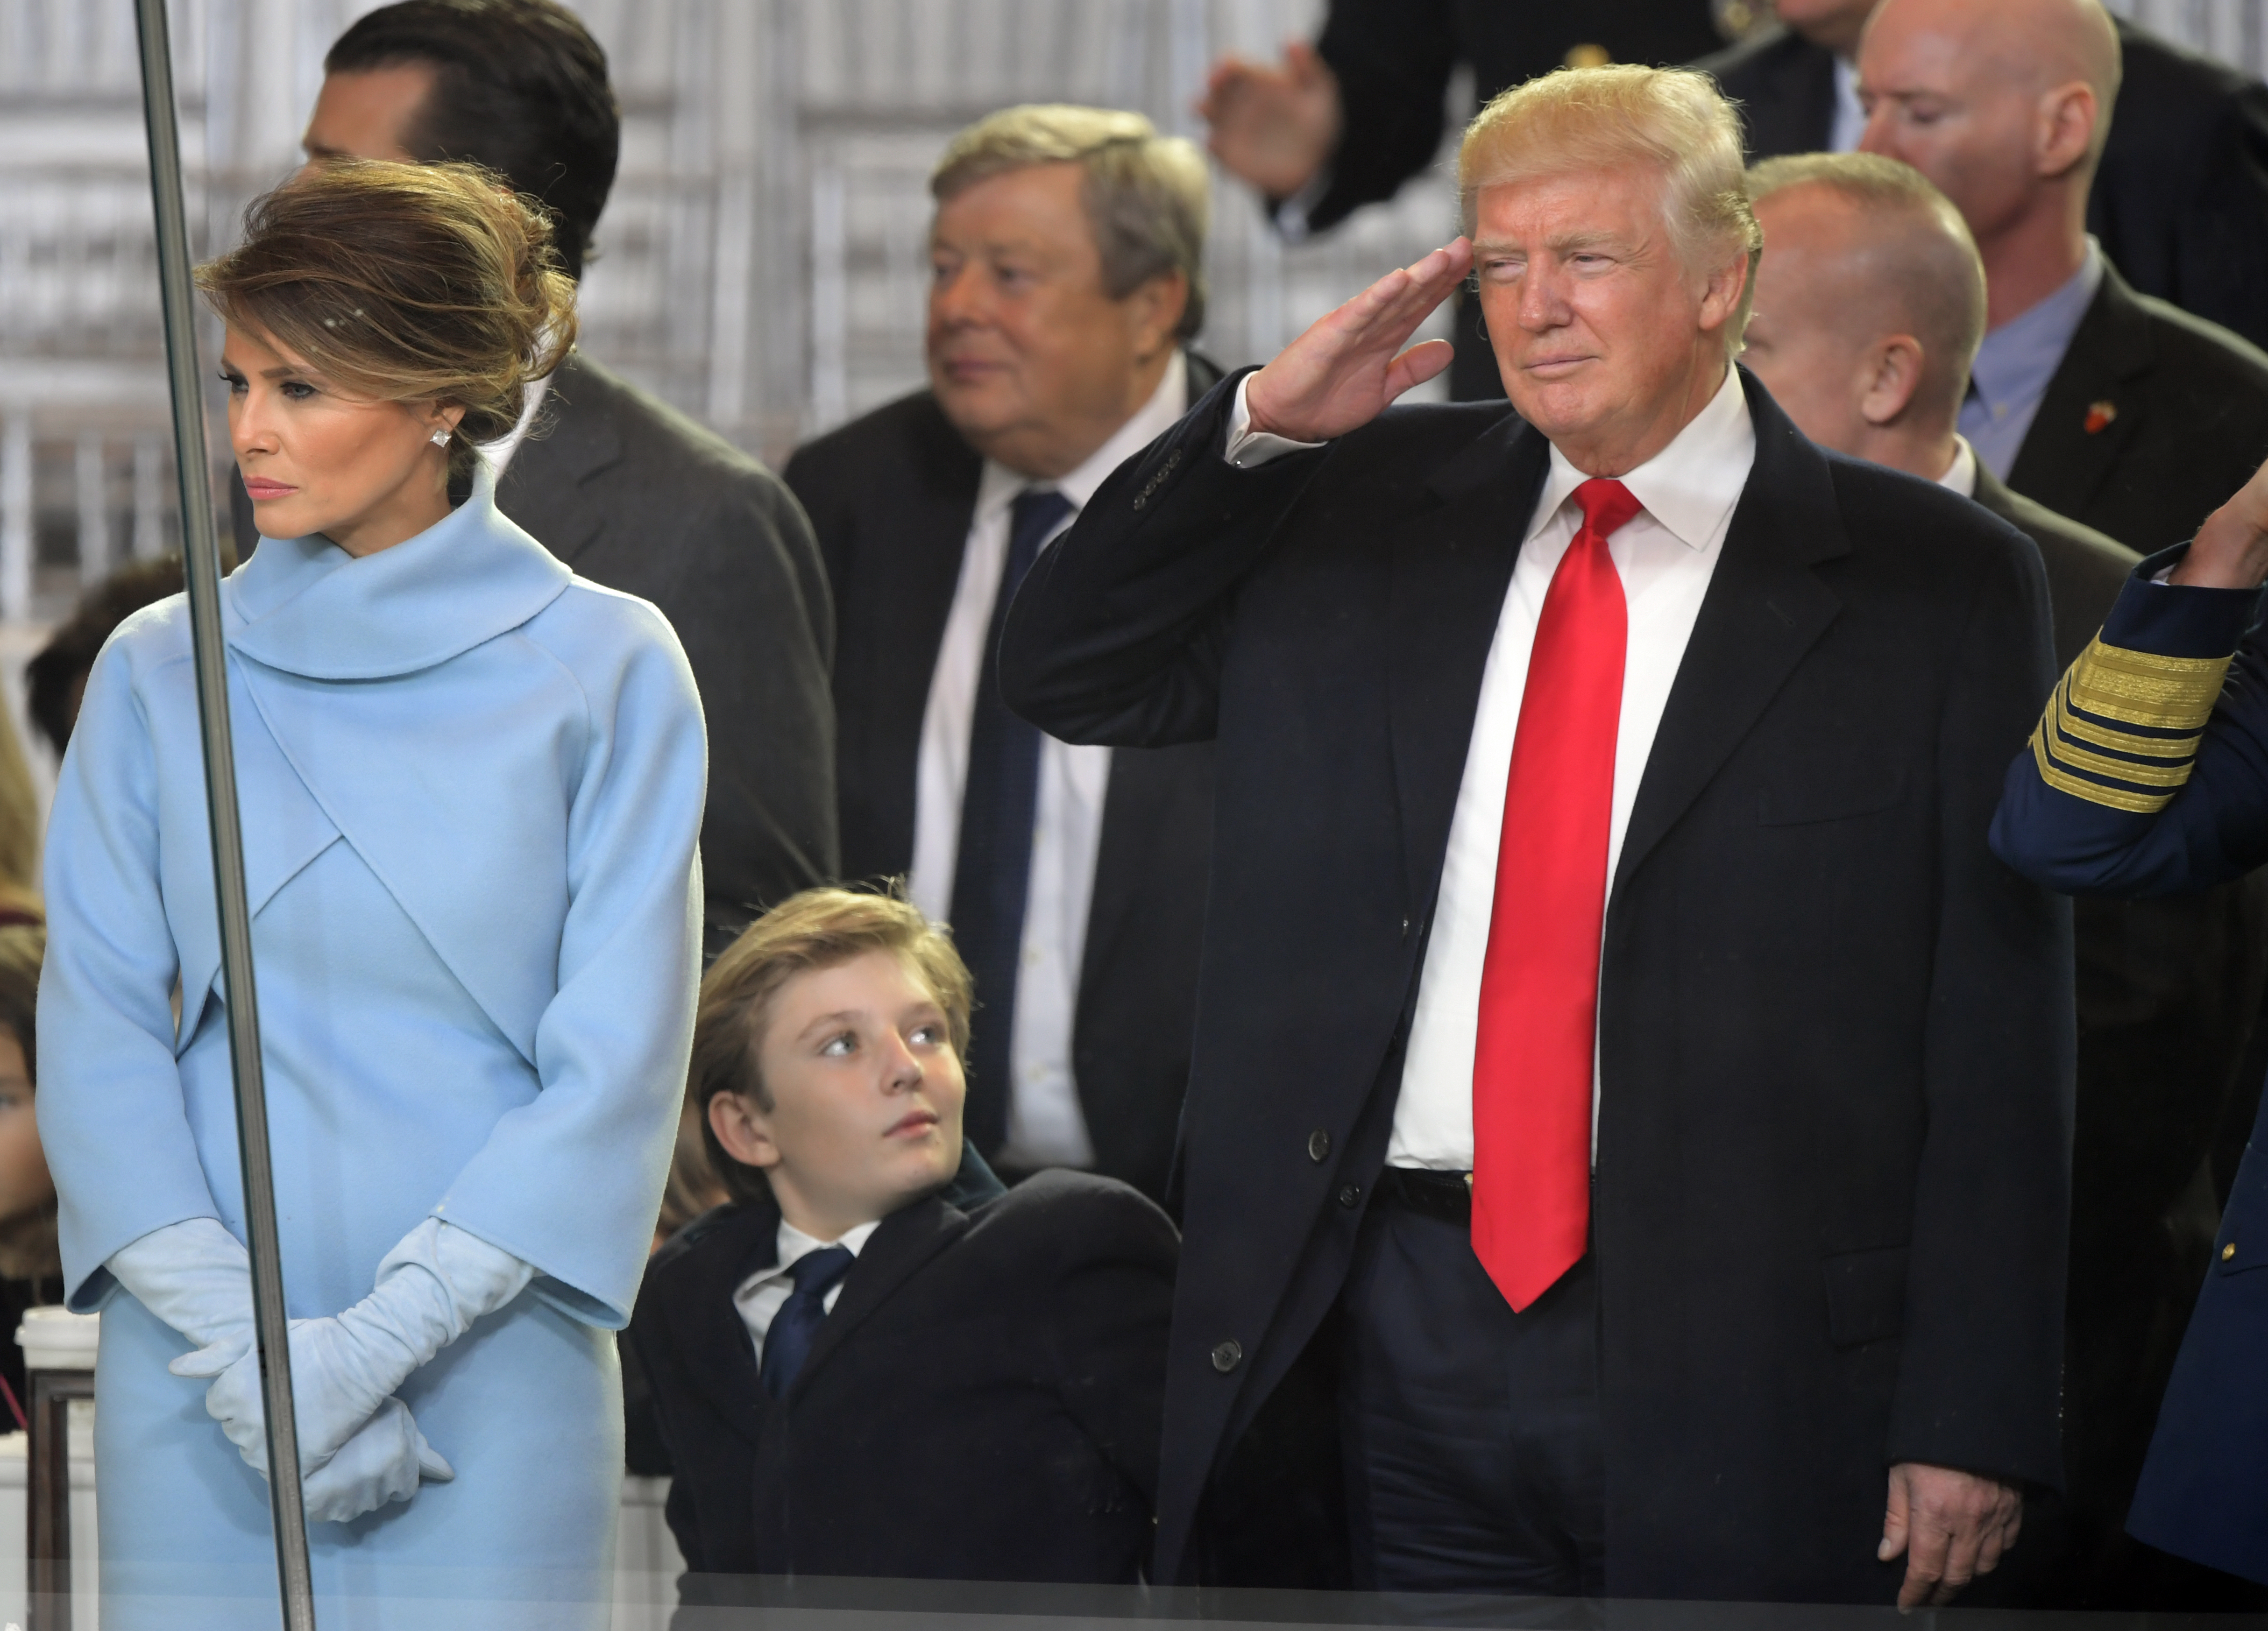 Newly sworn in President Donald Trump with his wife Melania walk down Pennsylvania Avenue in front of the White House